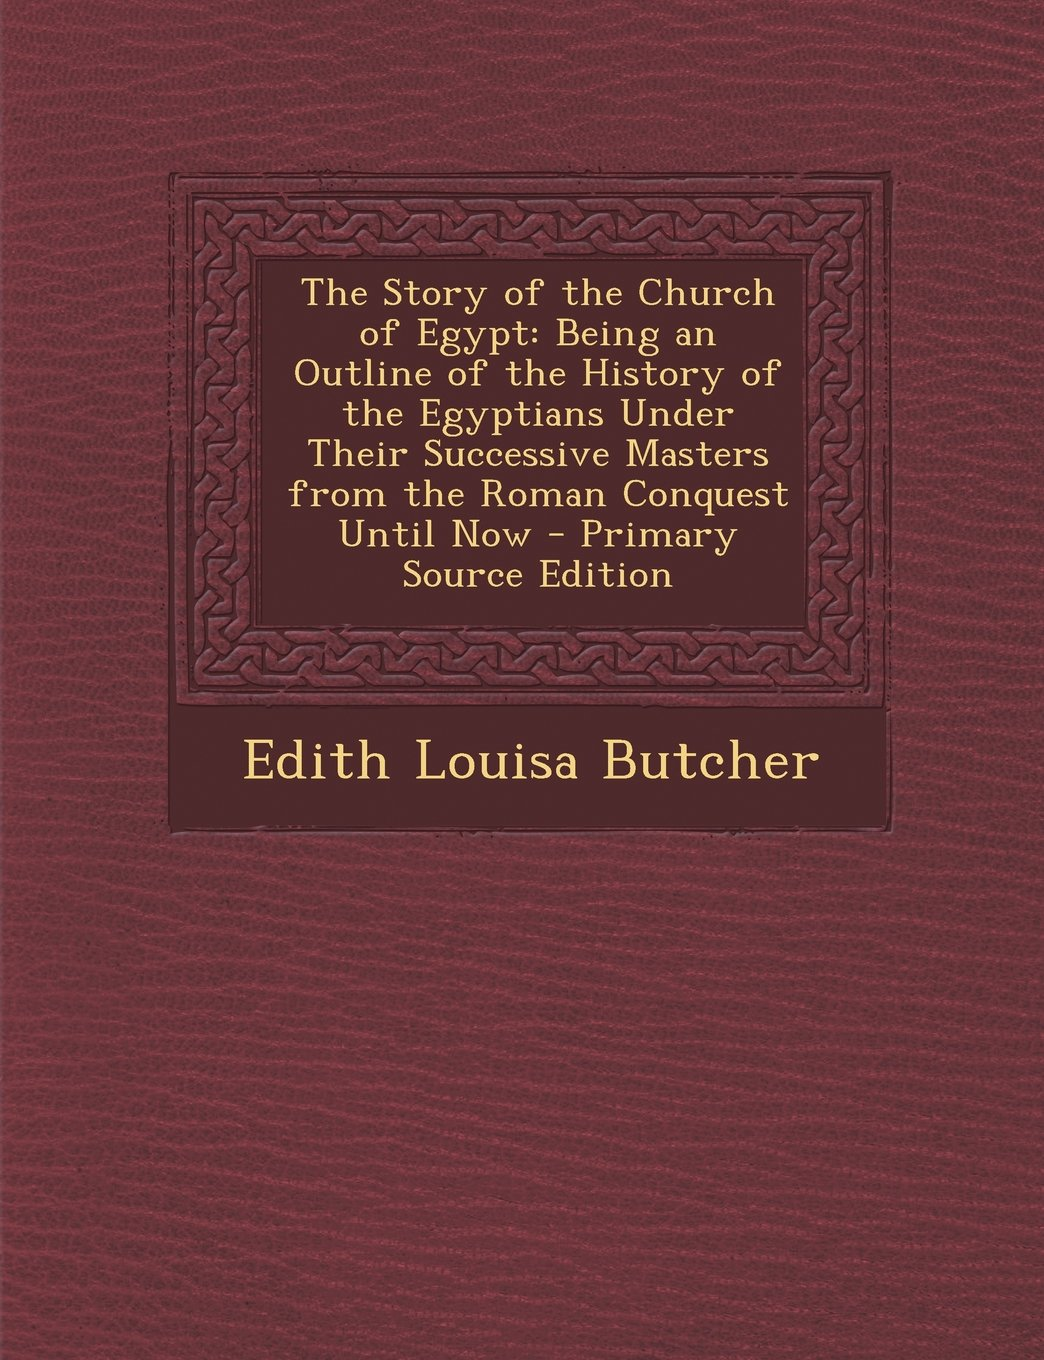 Download The Story of the Church of Egypt: Being an Outline of the History of the Egyptians Under Their Successive Masters from the Roman Conquest Until Now pdf